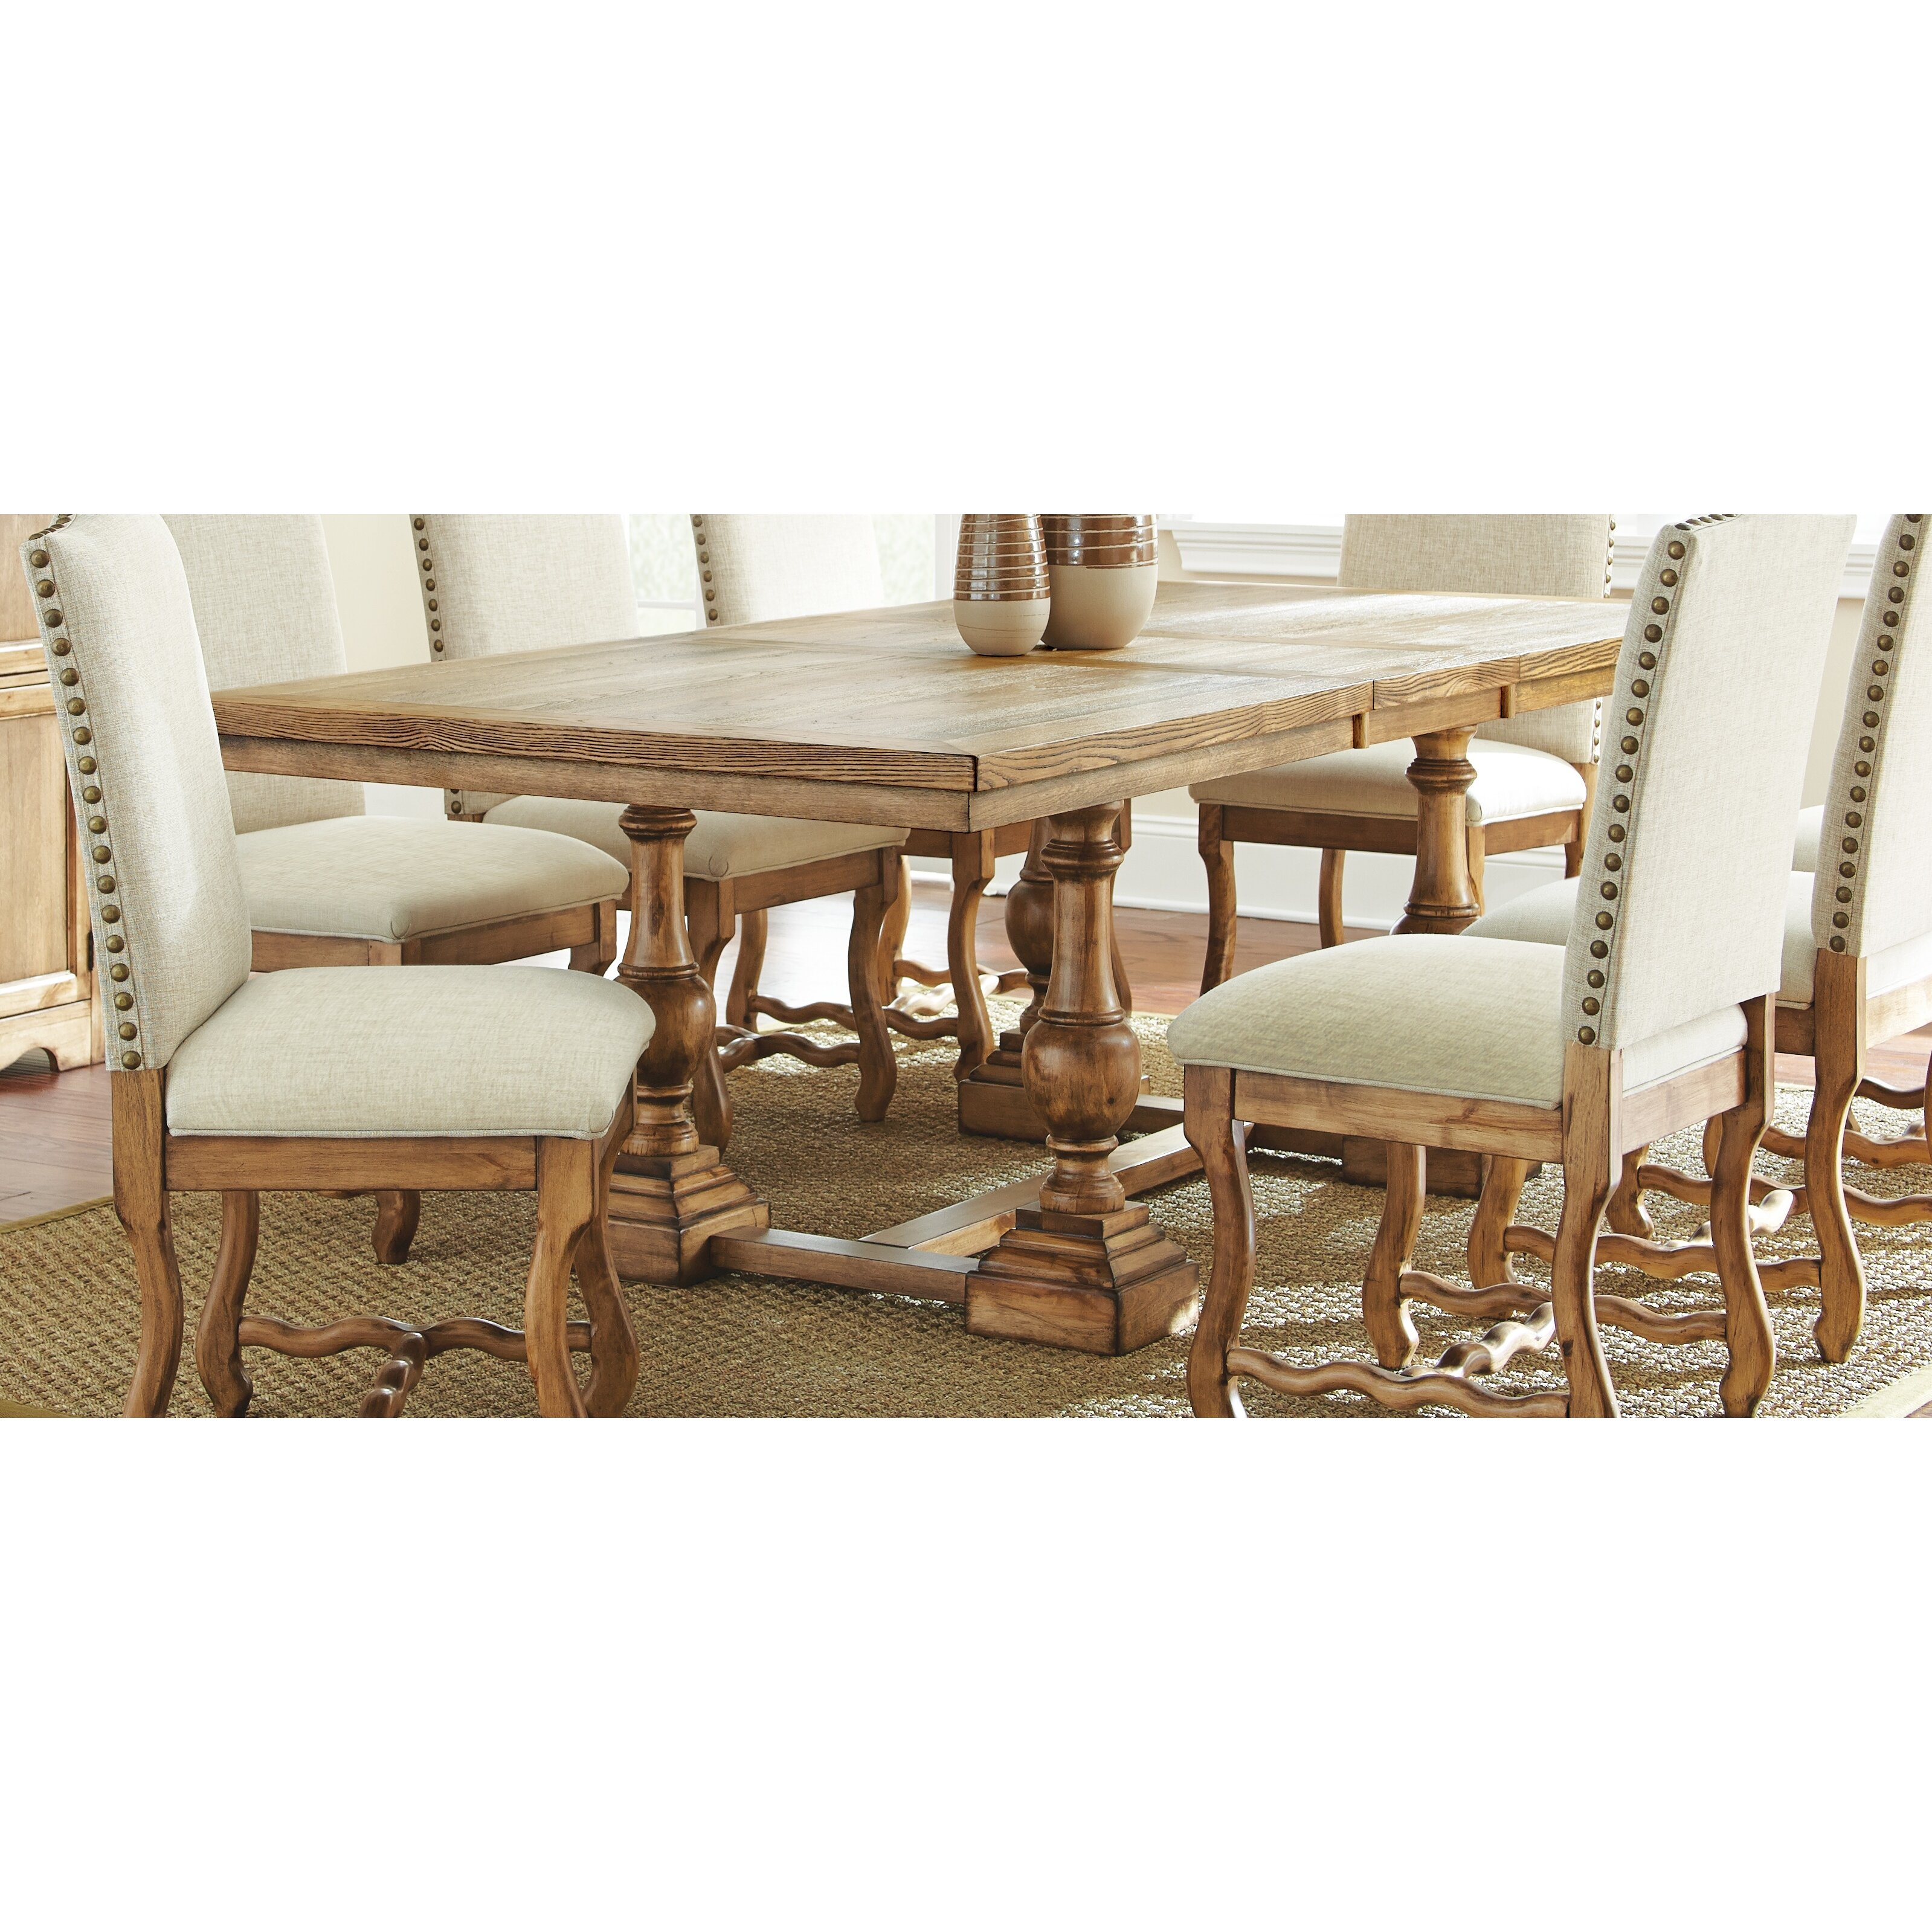 Steve Silver Furniture Plymouth Dining Table & Reviews